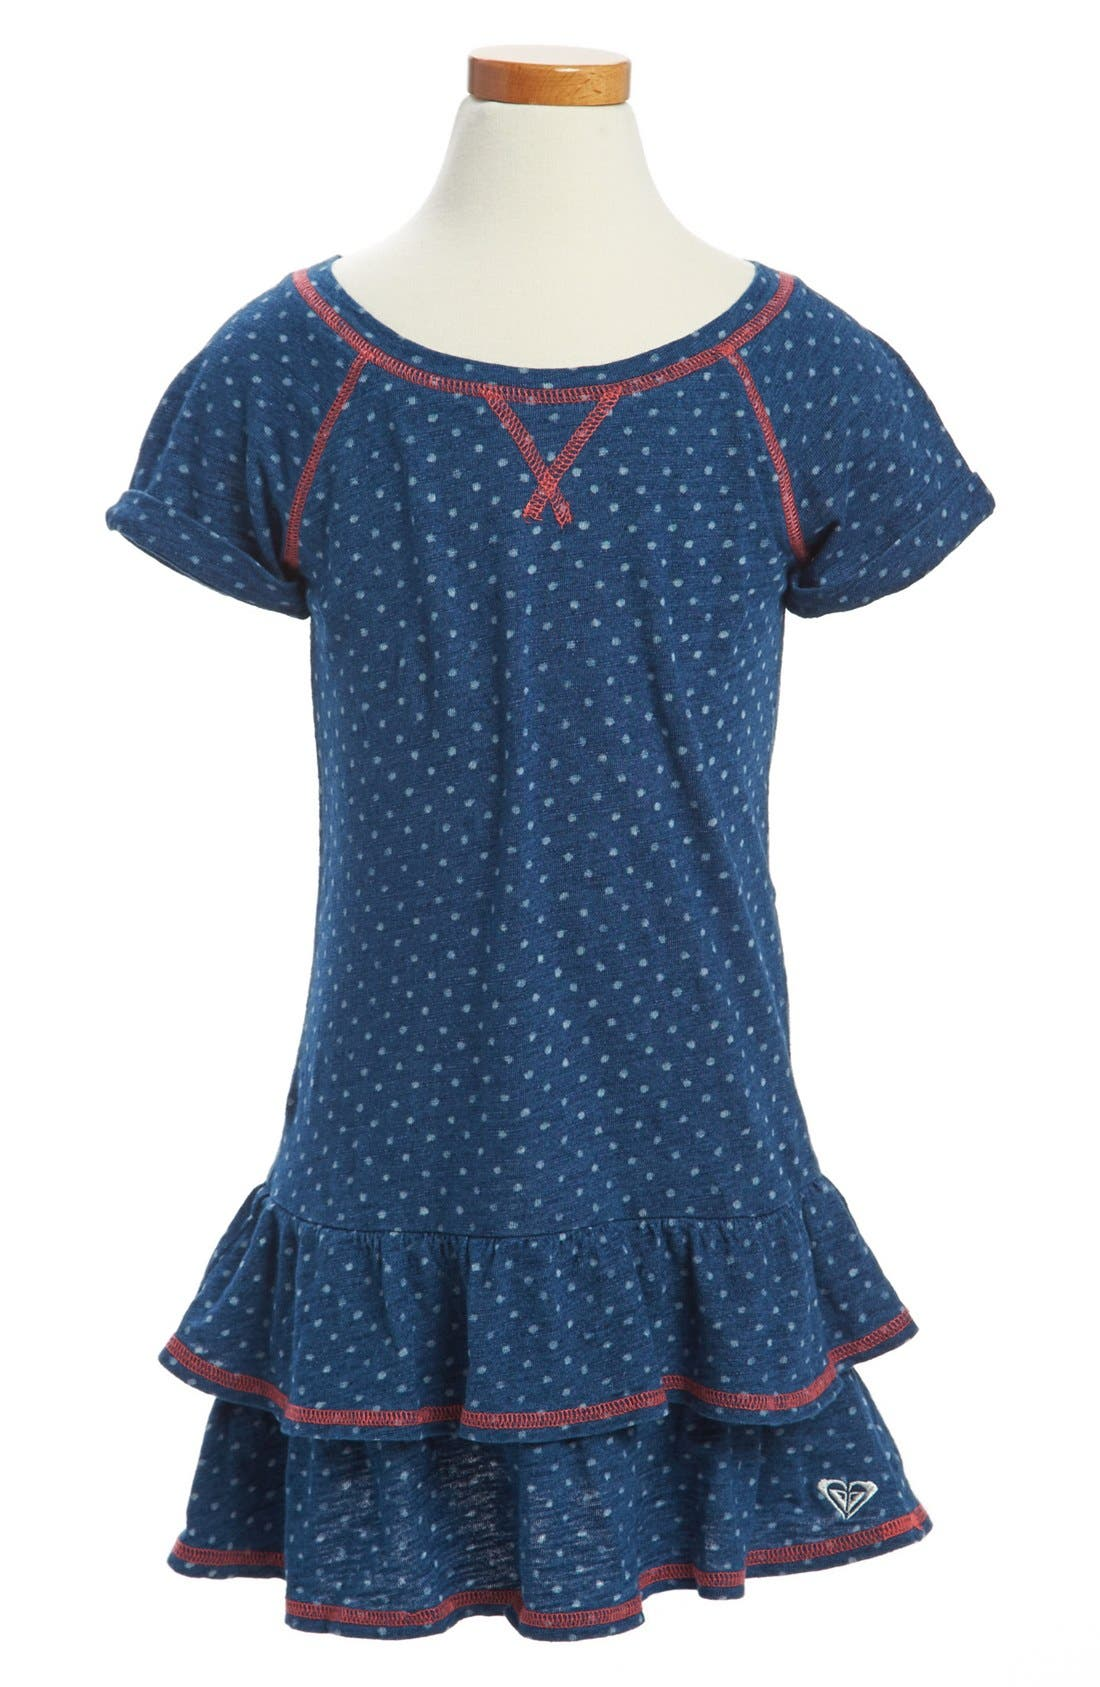 Alternate Image 1 Selected - Roxy 'Fall Limit' Dress (Toddler Girls)